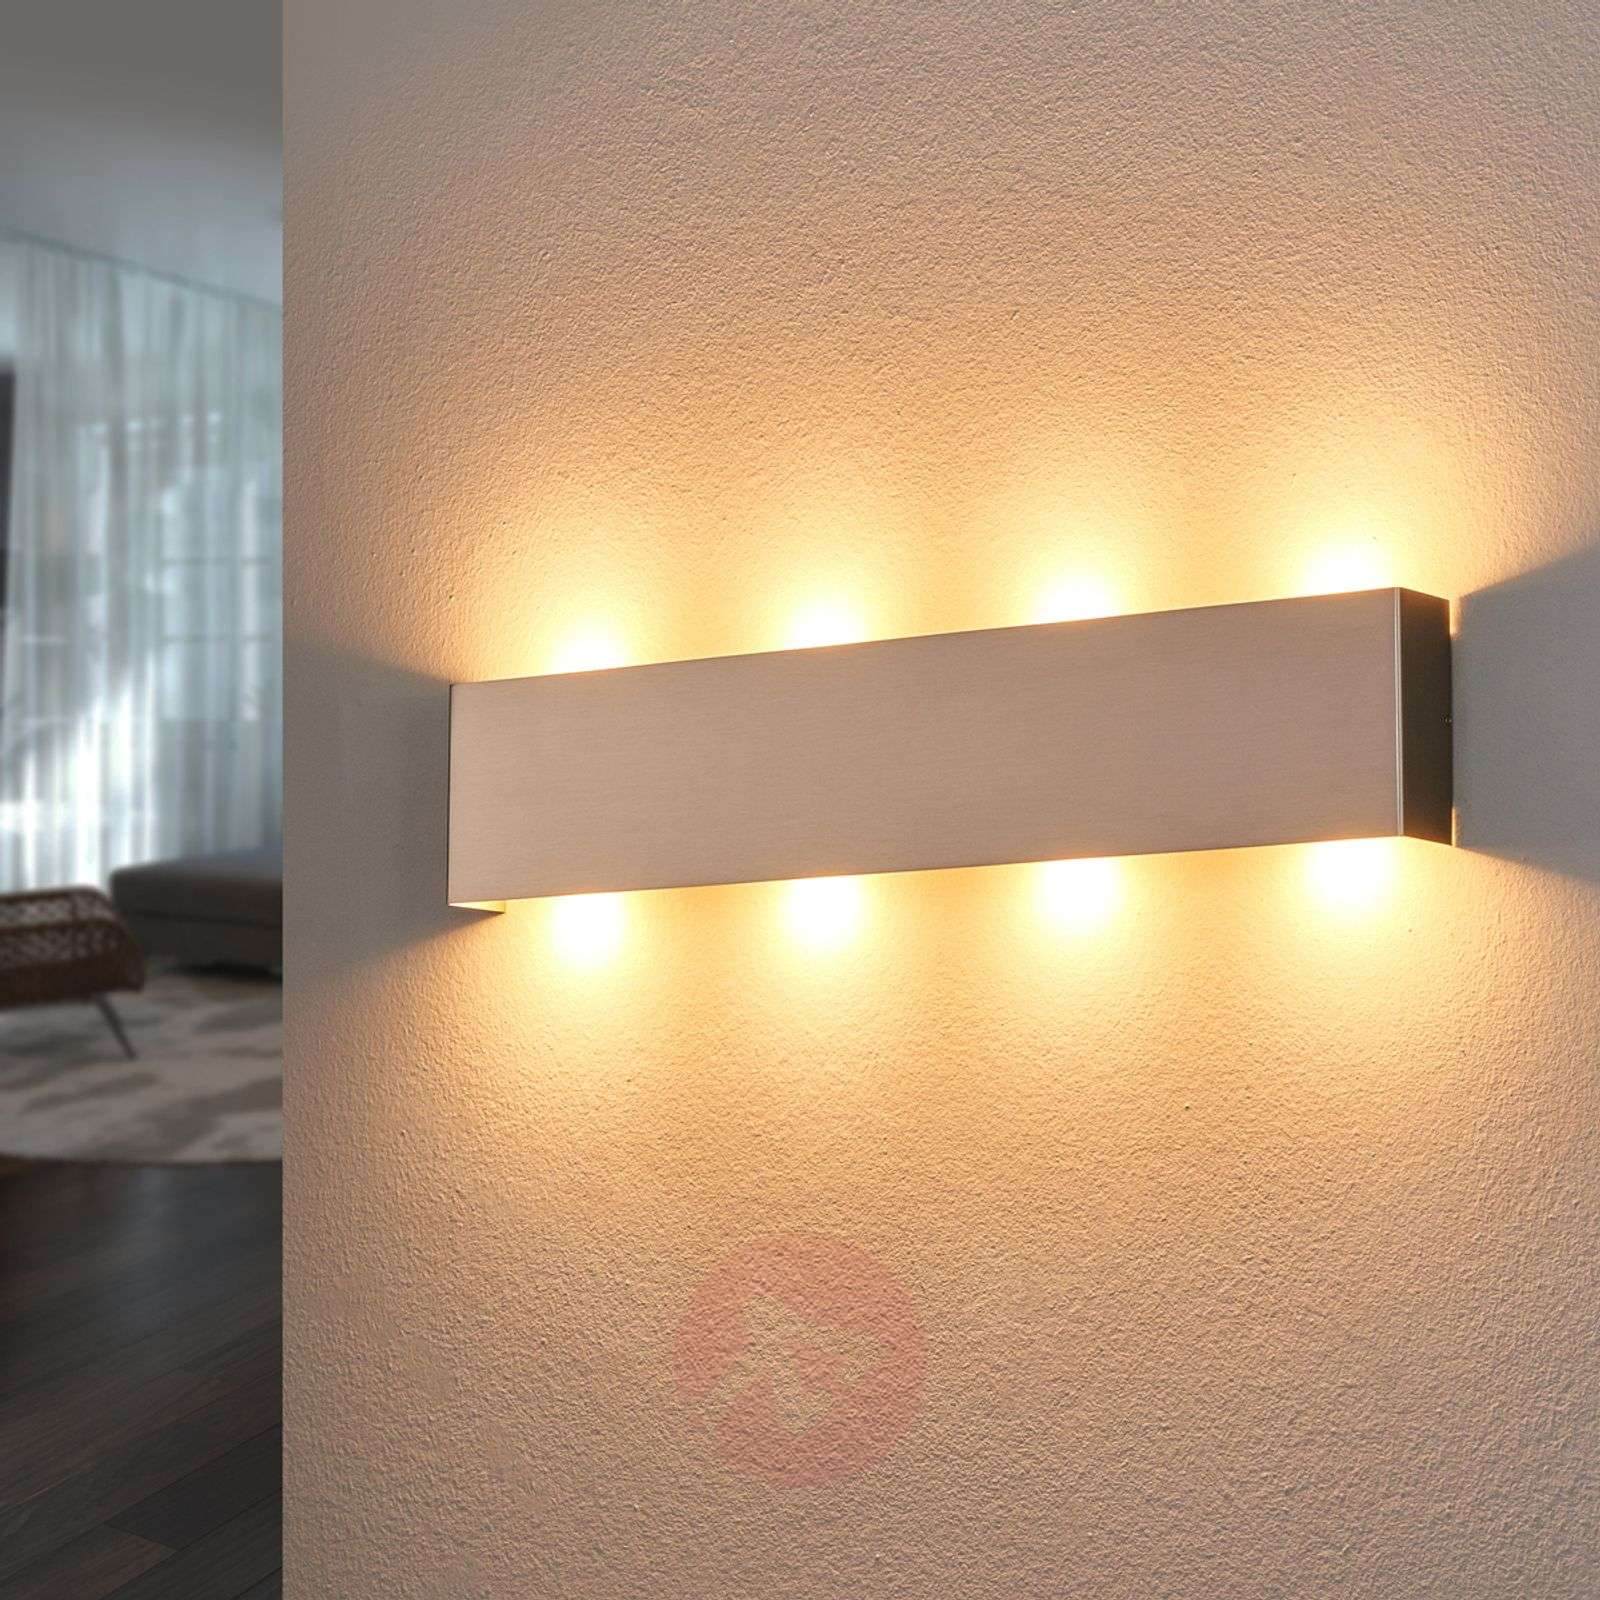 Nickel coloured maja led wall light 54 cm lights nickel coloured maja led wall light 54 cm 6722153 01 aloadofball Images